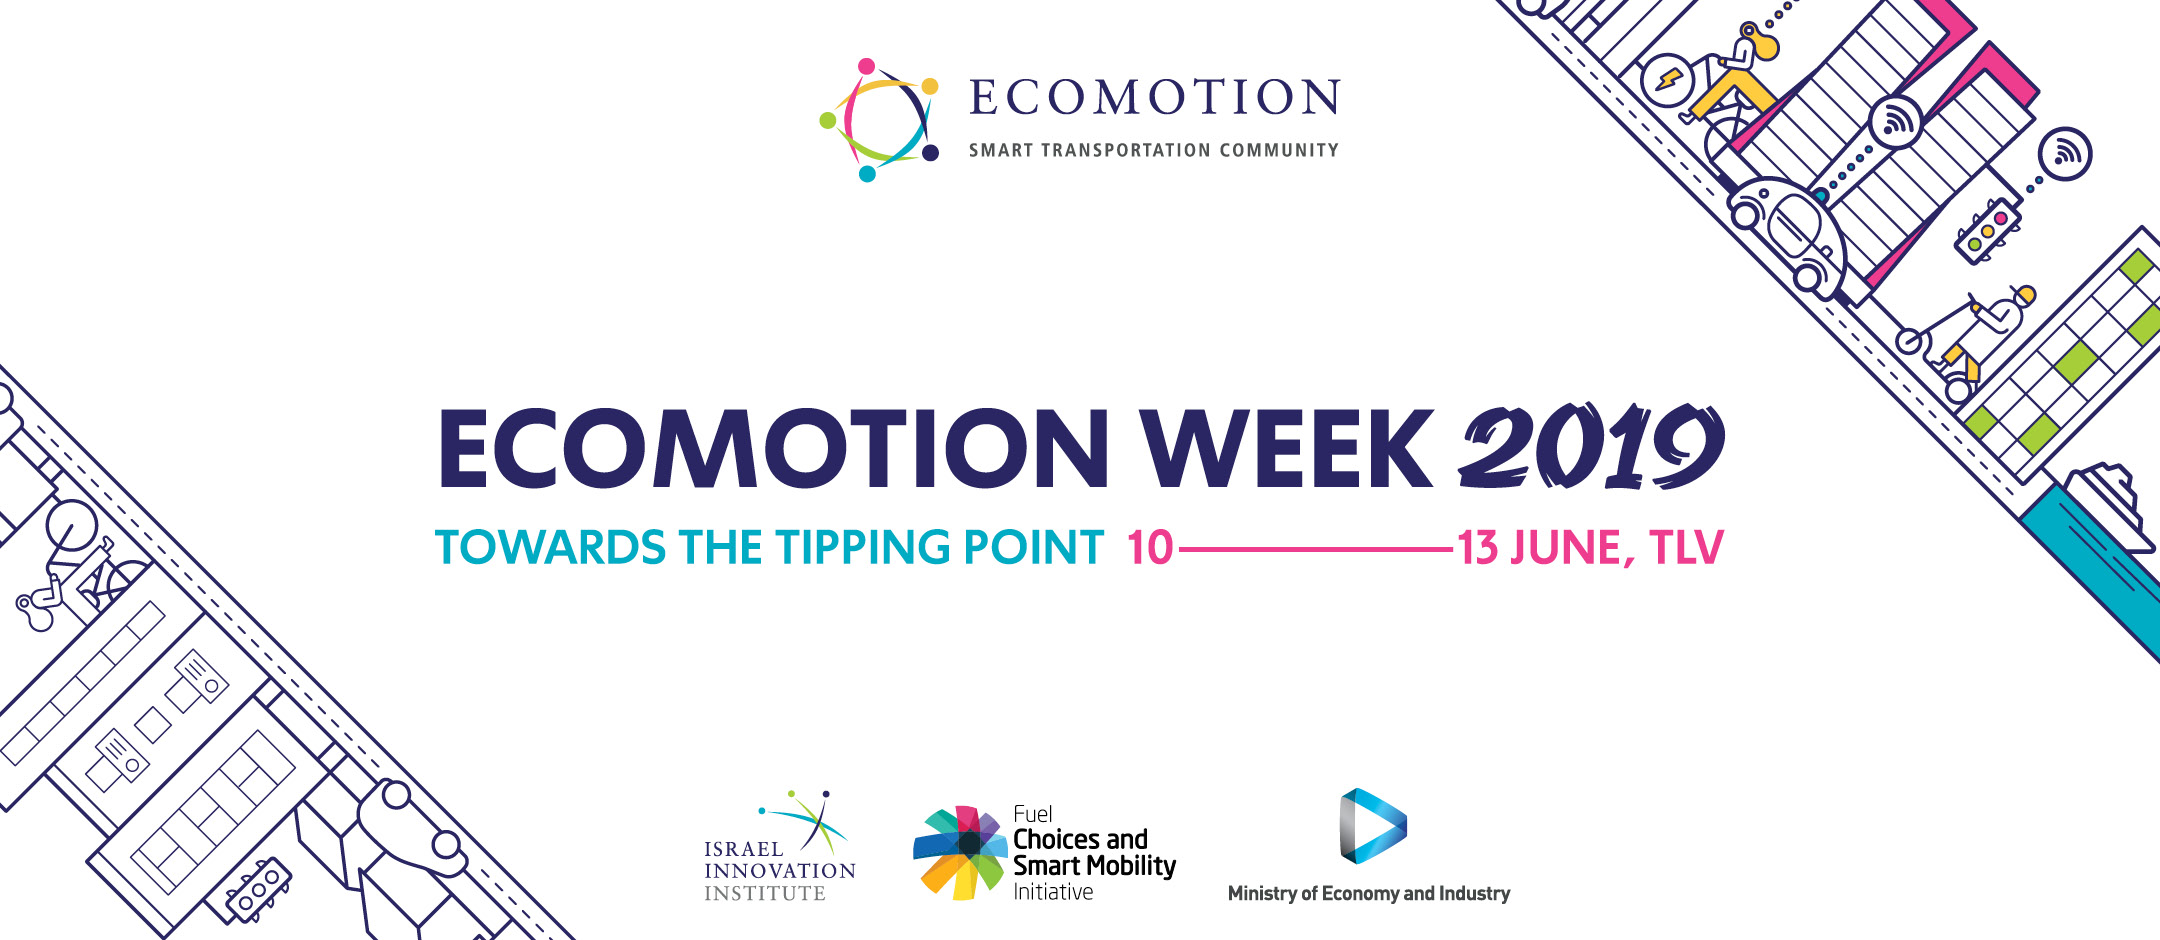 EcoMotion Week 2019 - Towards the tipping point